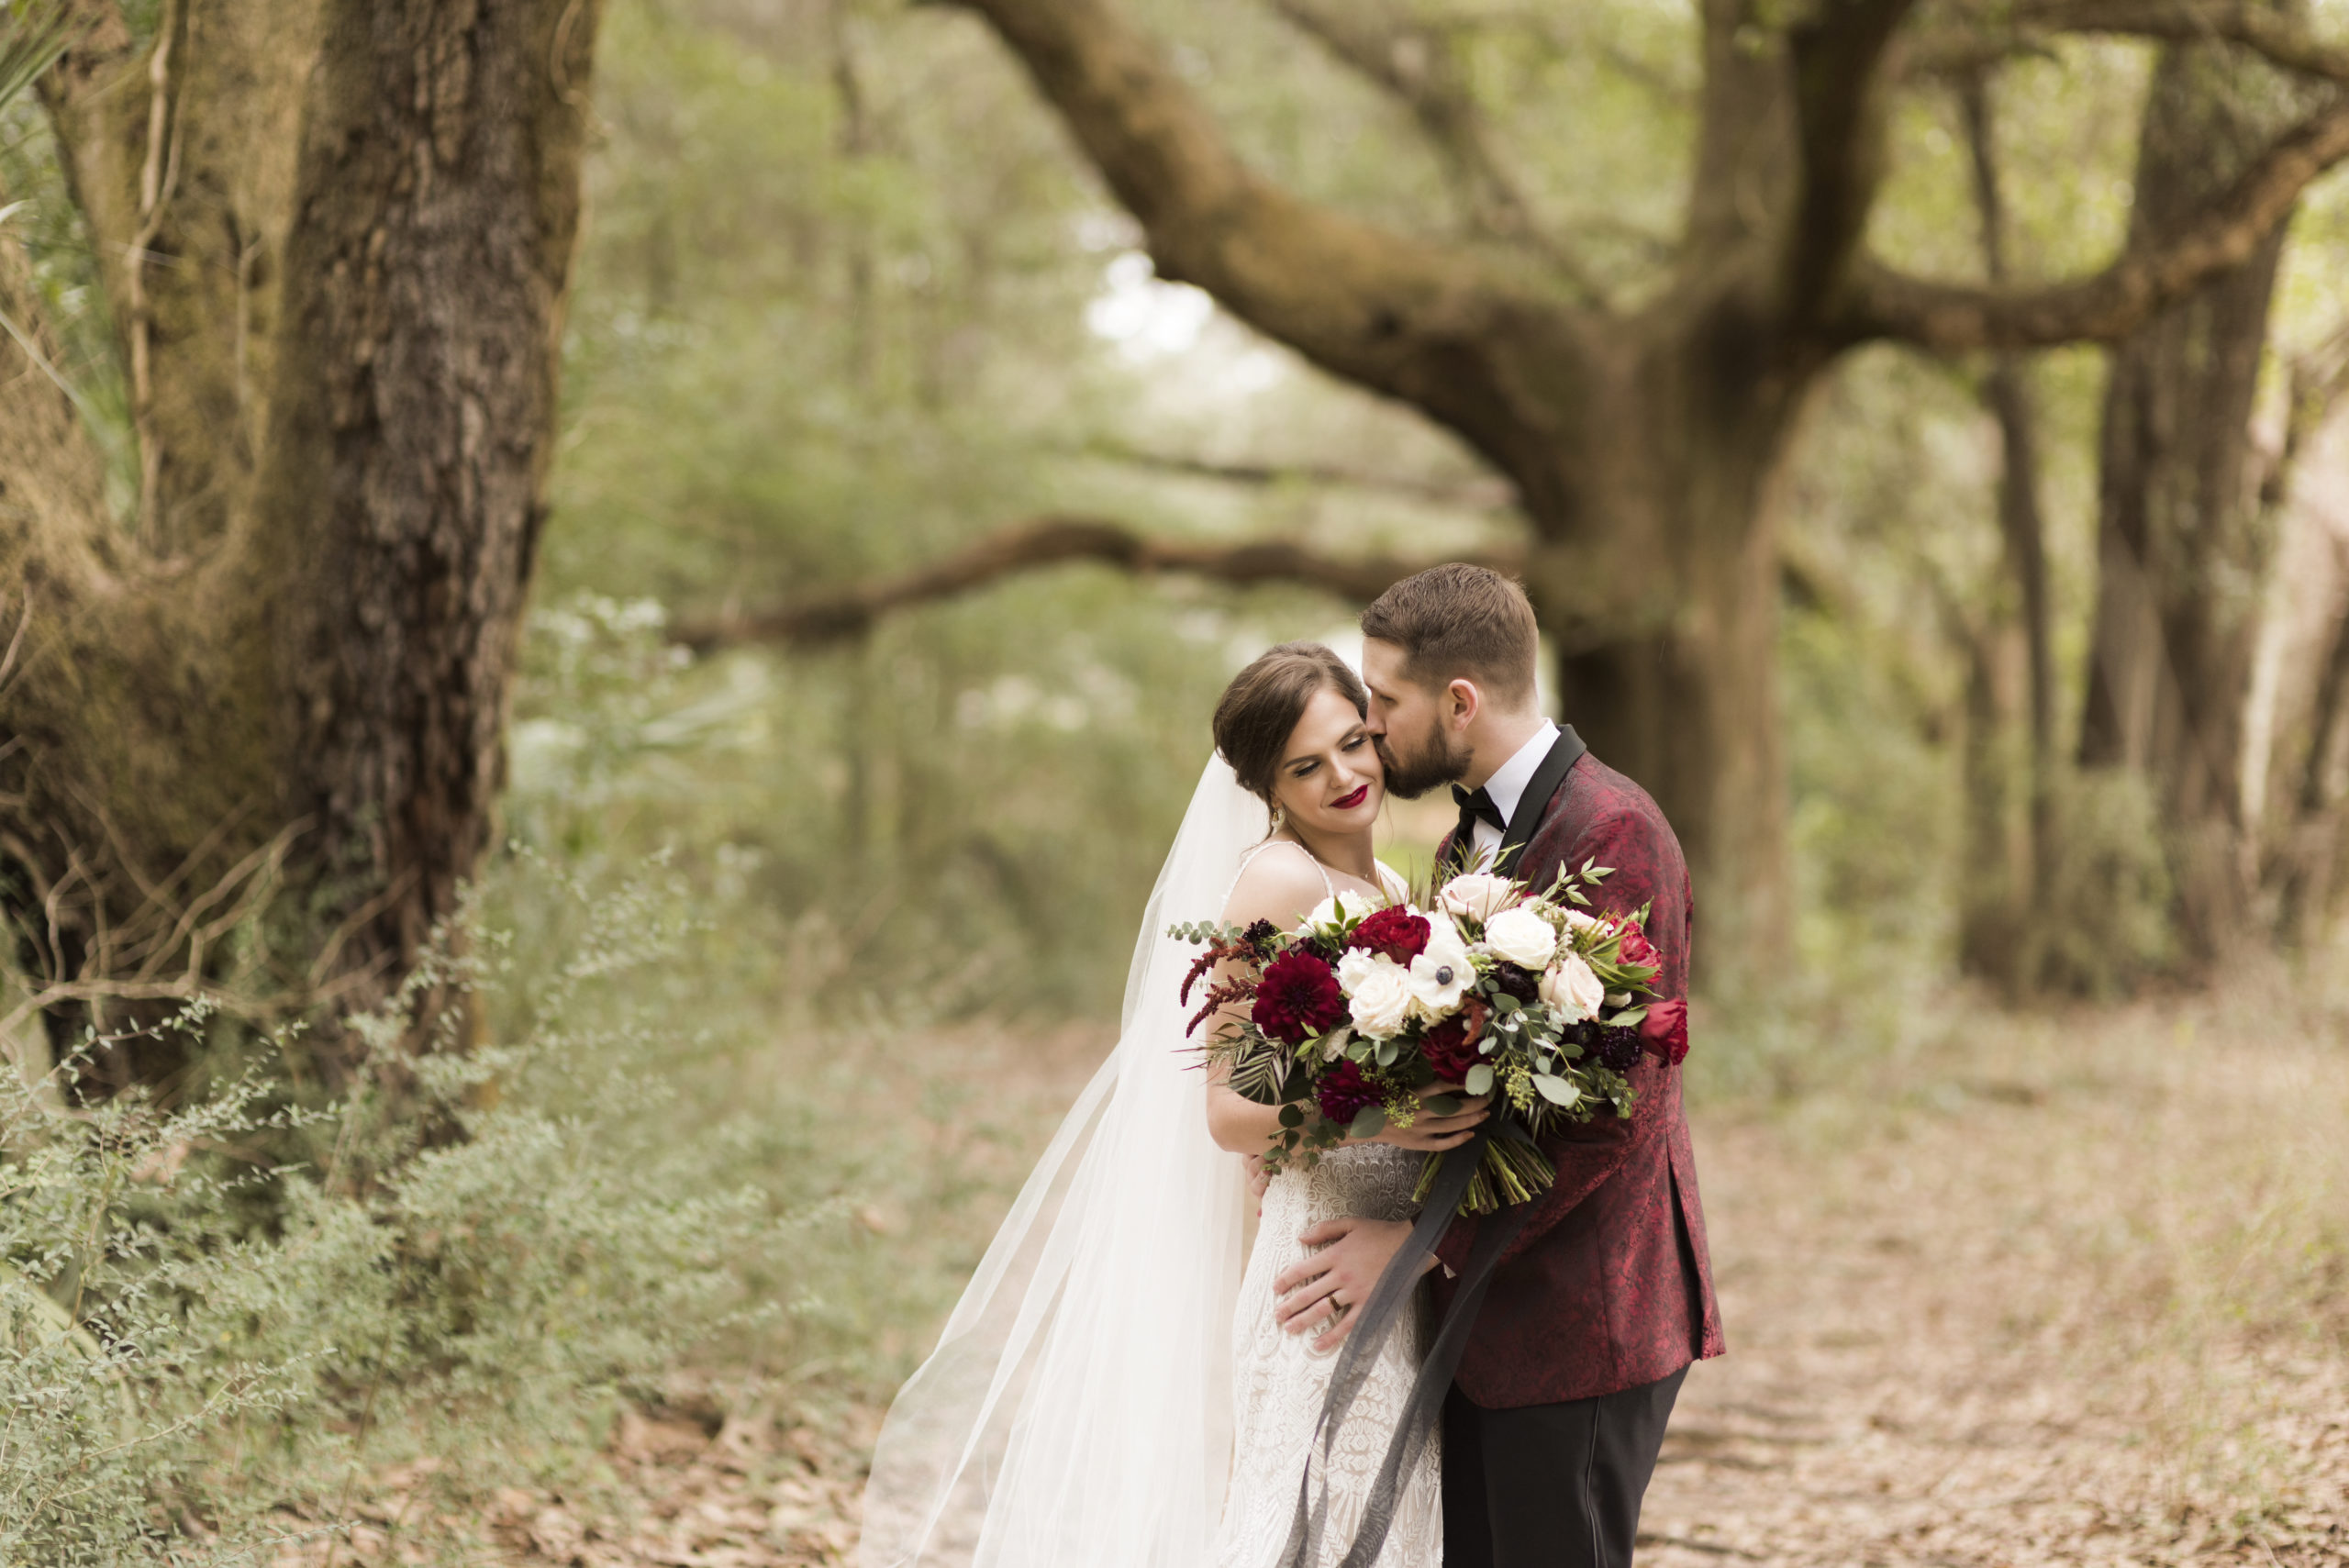 Nature wedding - Aislinn Kate Wedding Photography - Pensacola, Florida